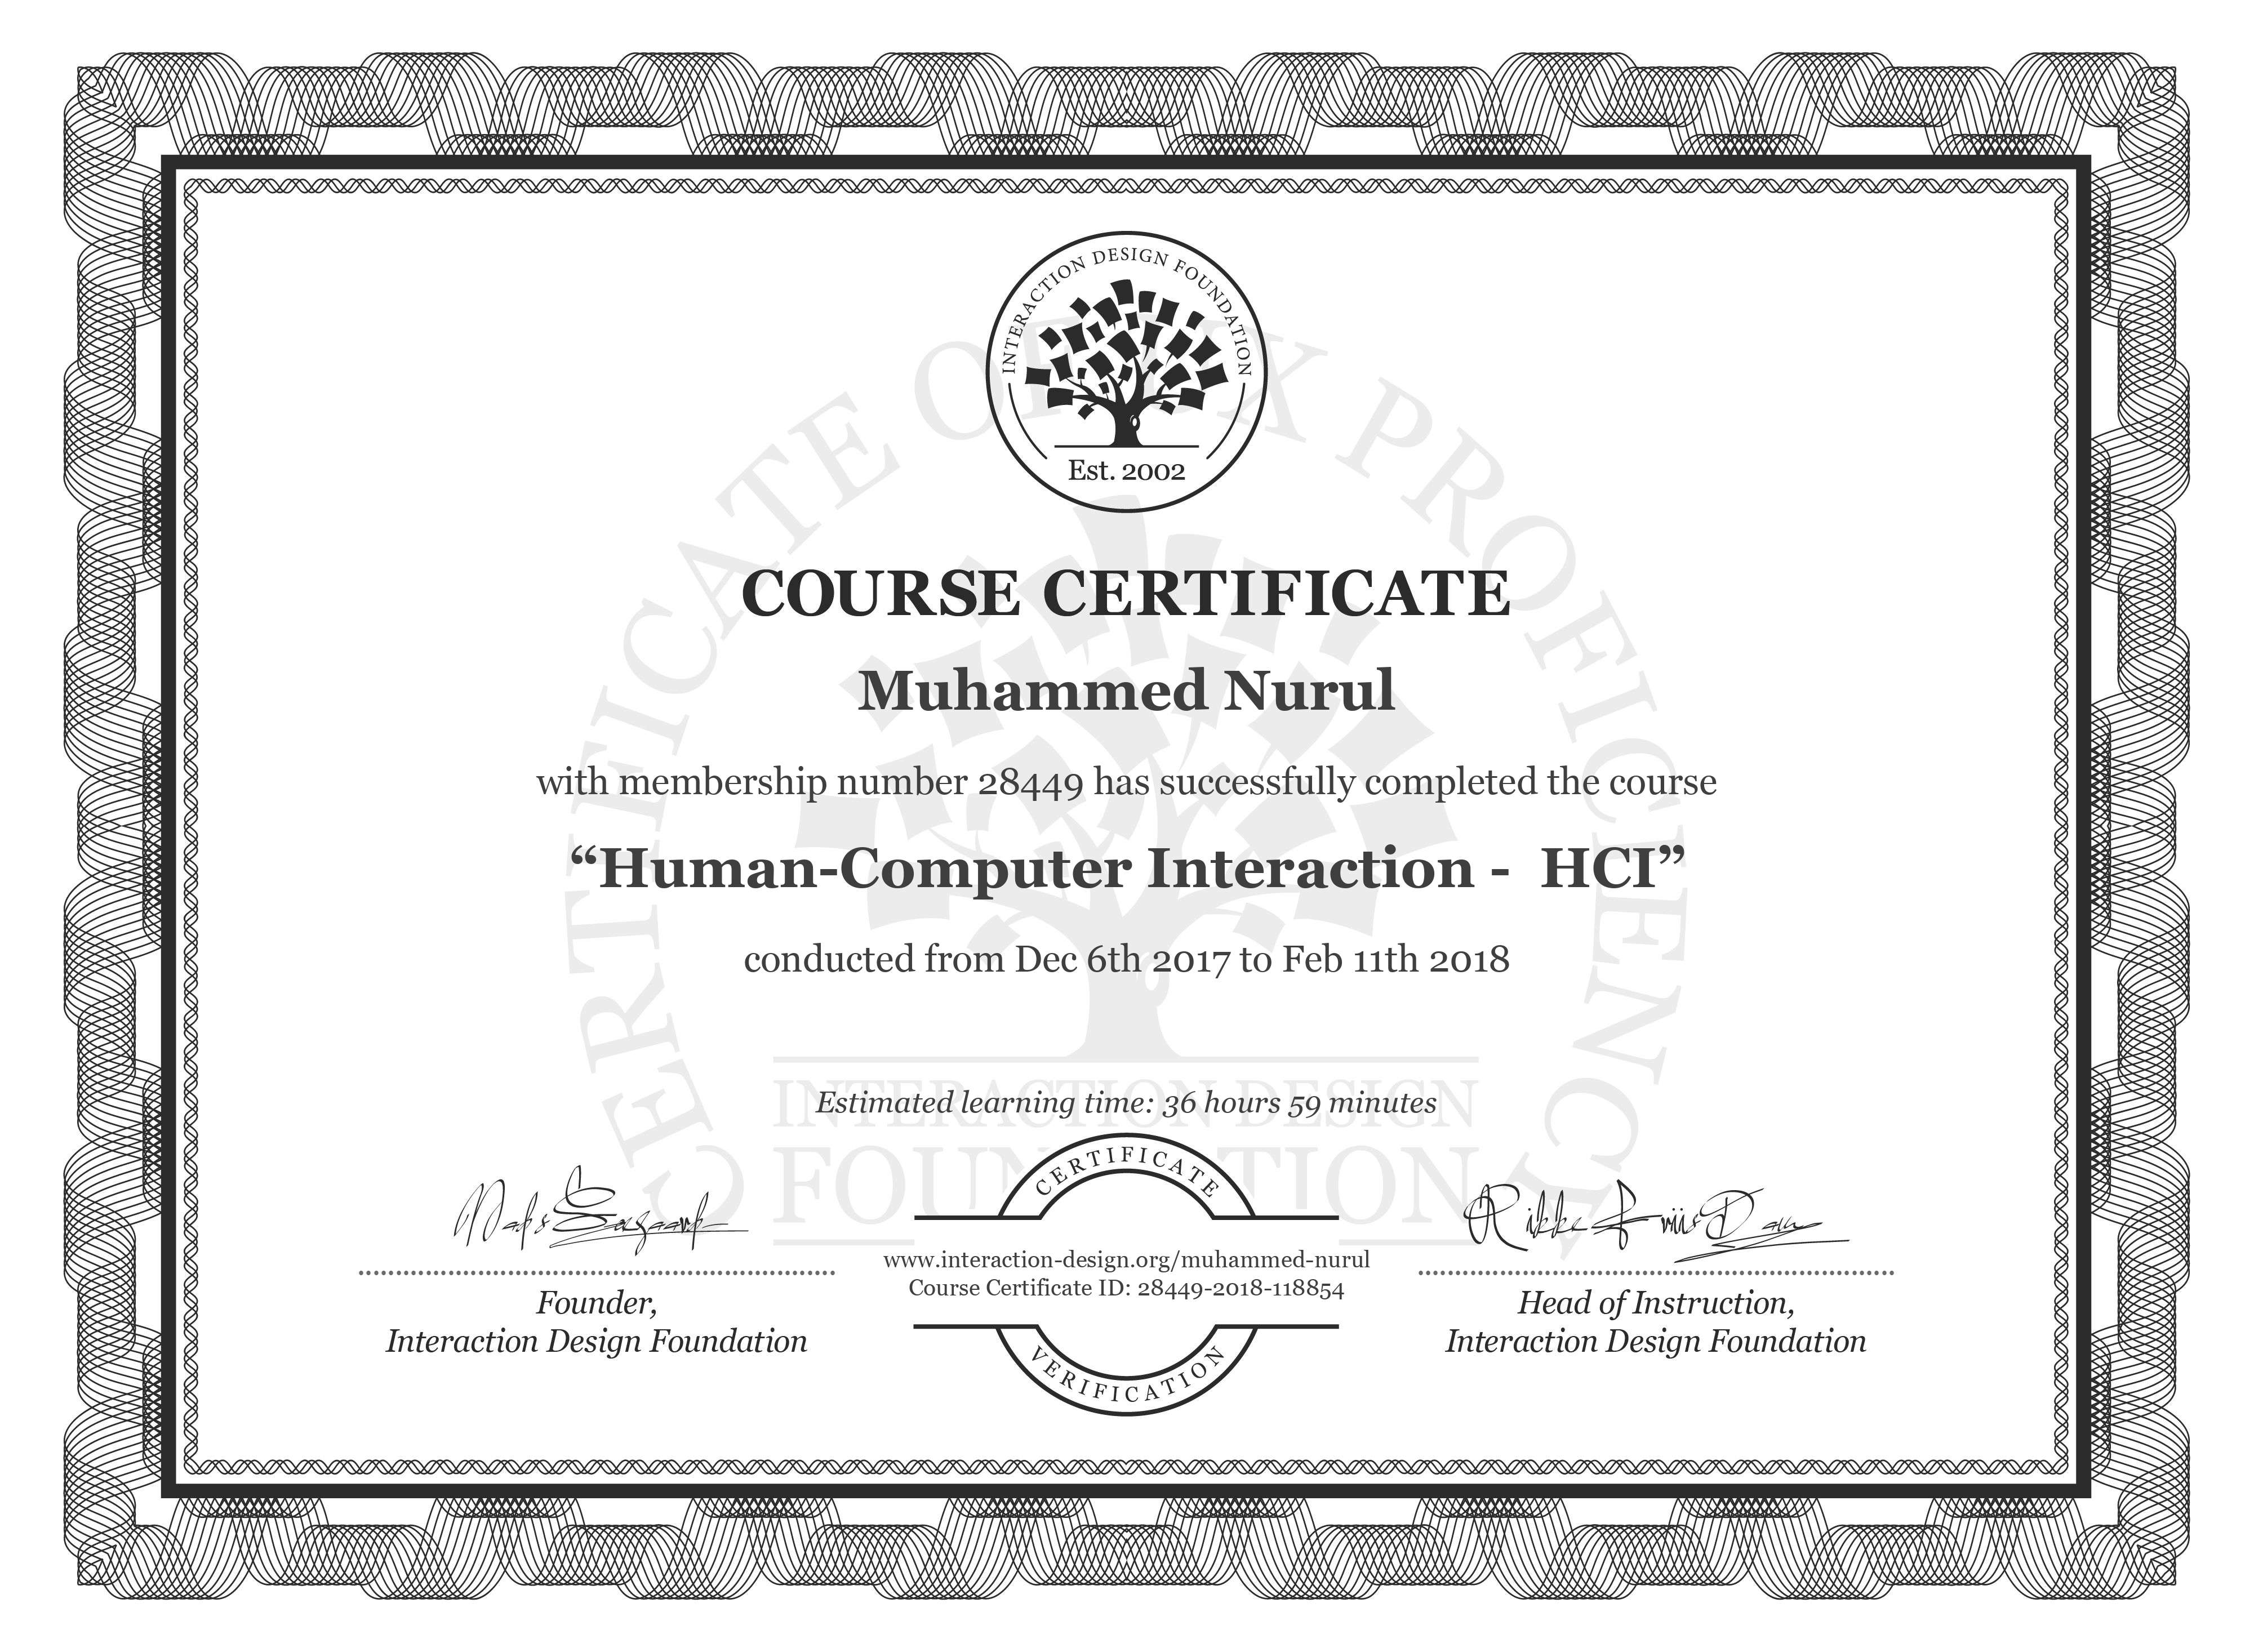 Muhammed Nurul's Course Certificate: Human-Computer Interaction -  HCI